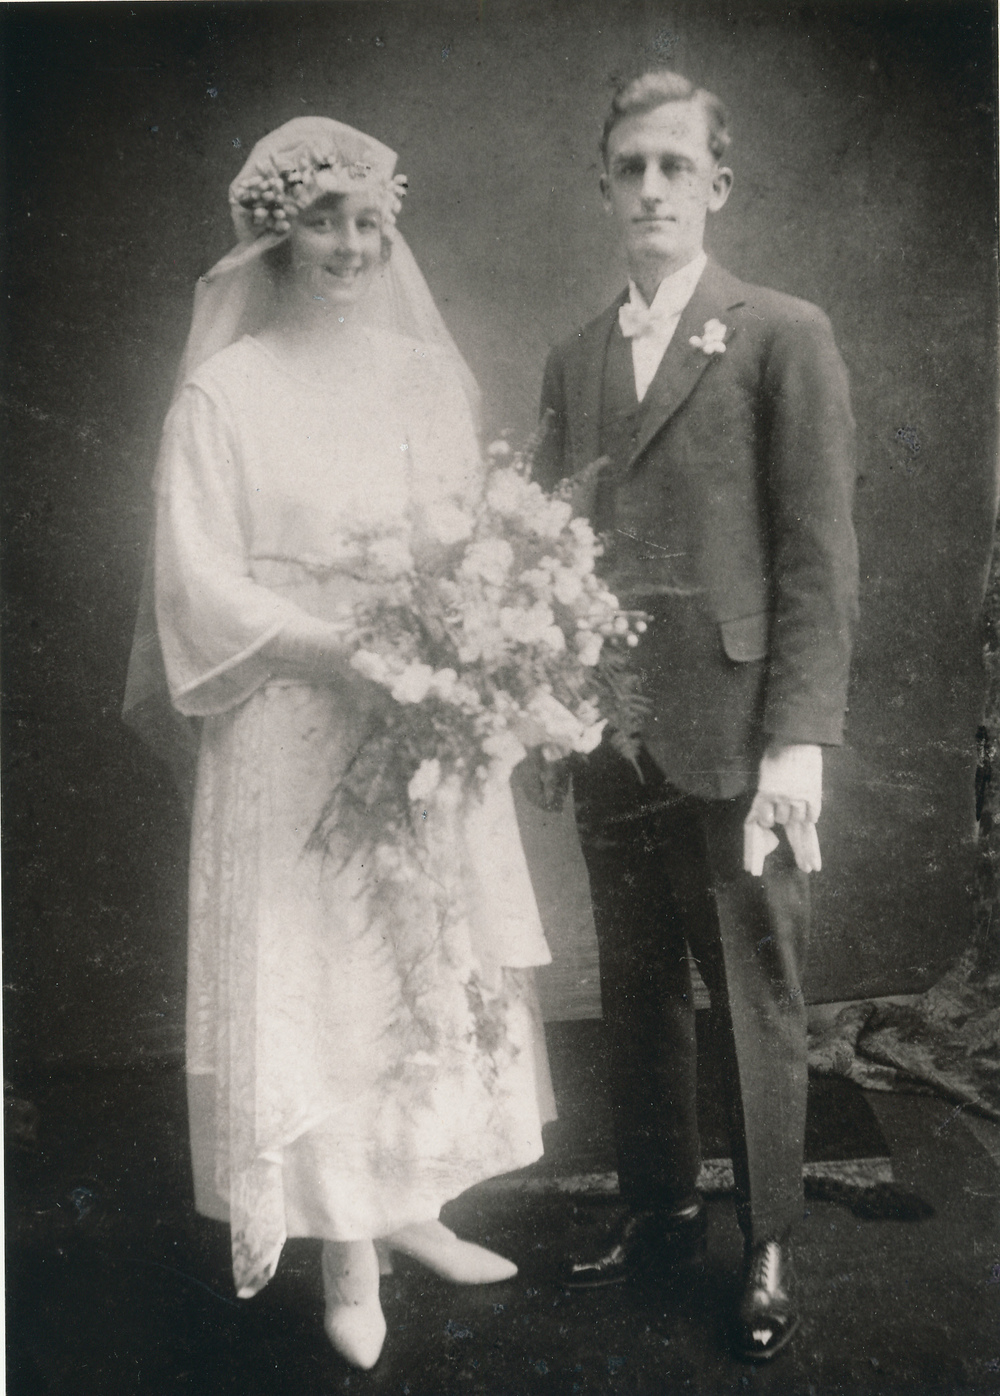 Kathleen Prince and George Belfrage on their wedding day, 1922 (Noel Belfrage Collection)